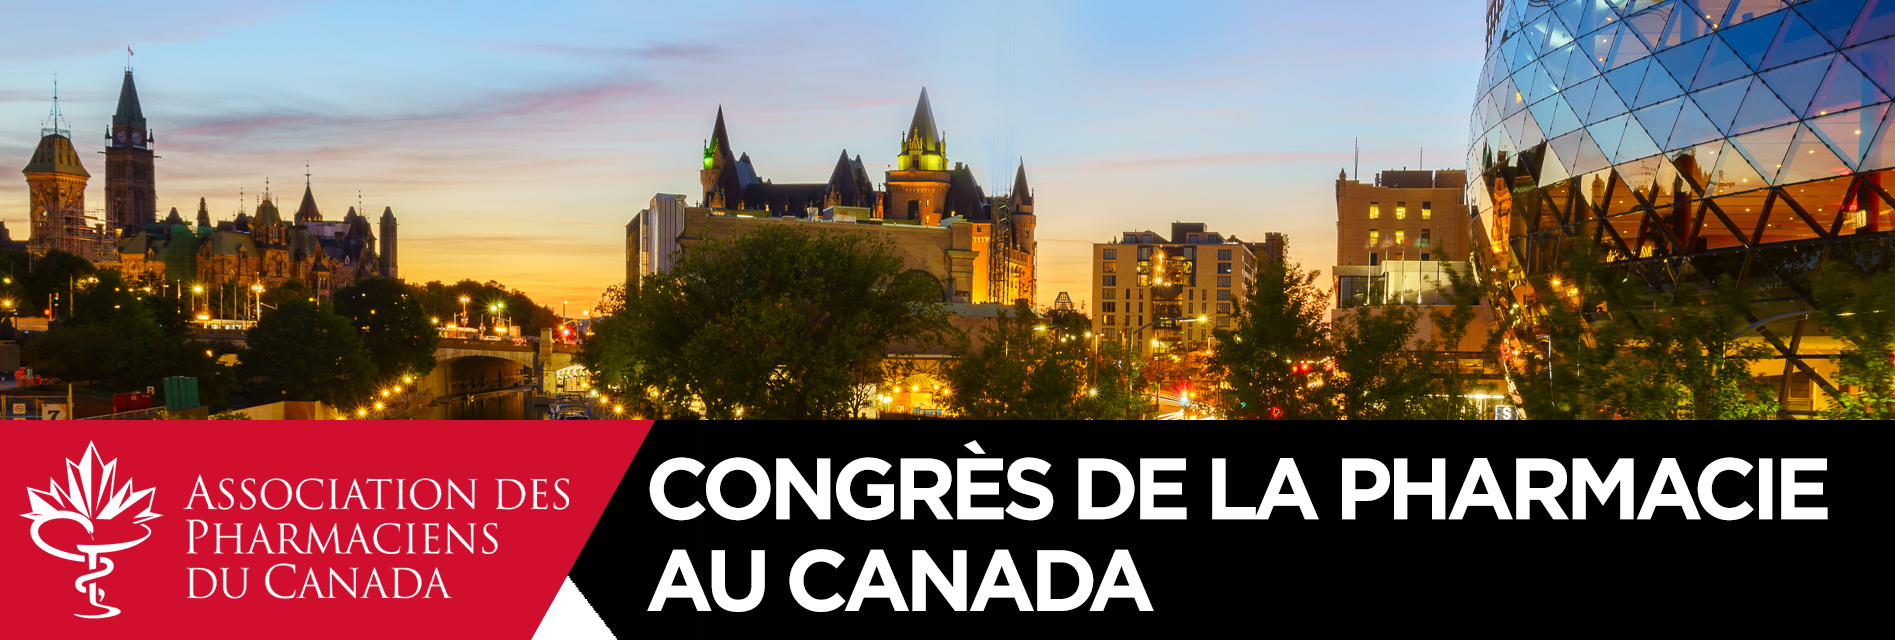 CANADIAN PHARMACY CONFERENCE October 23-24, 2020